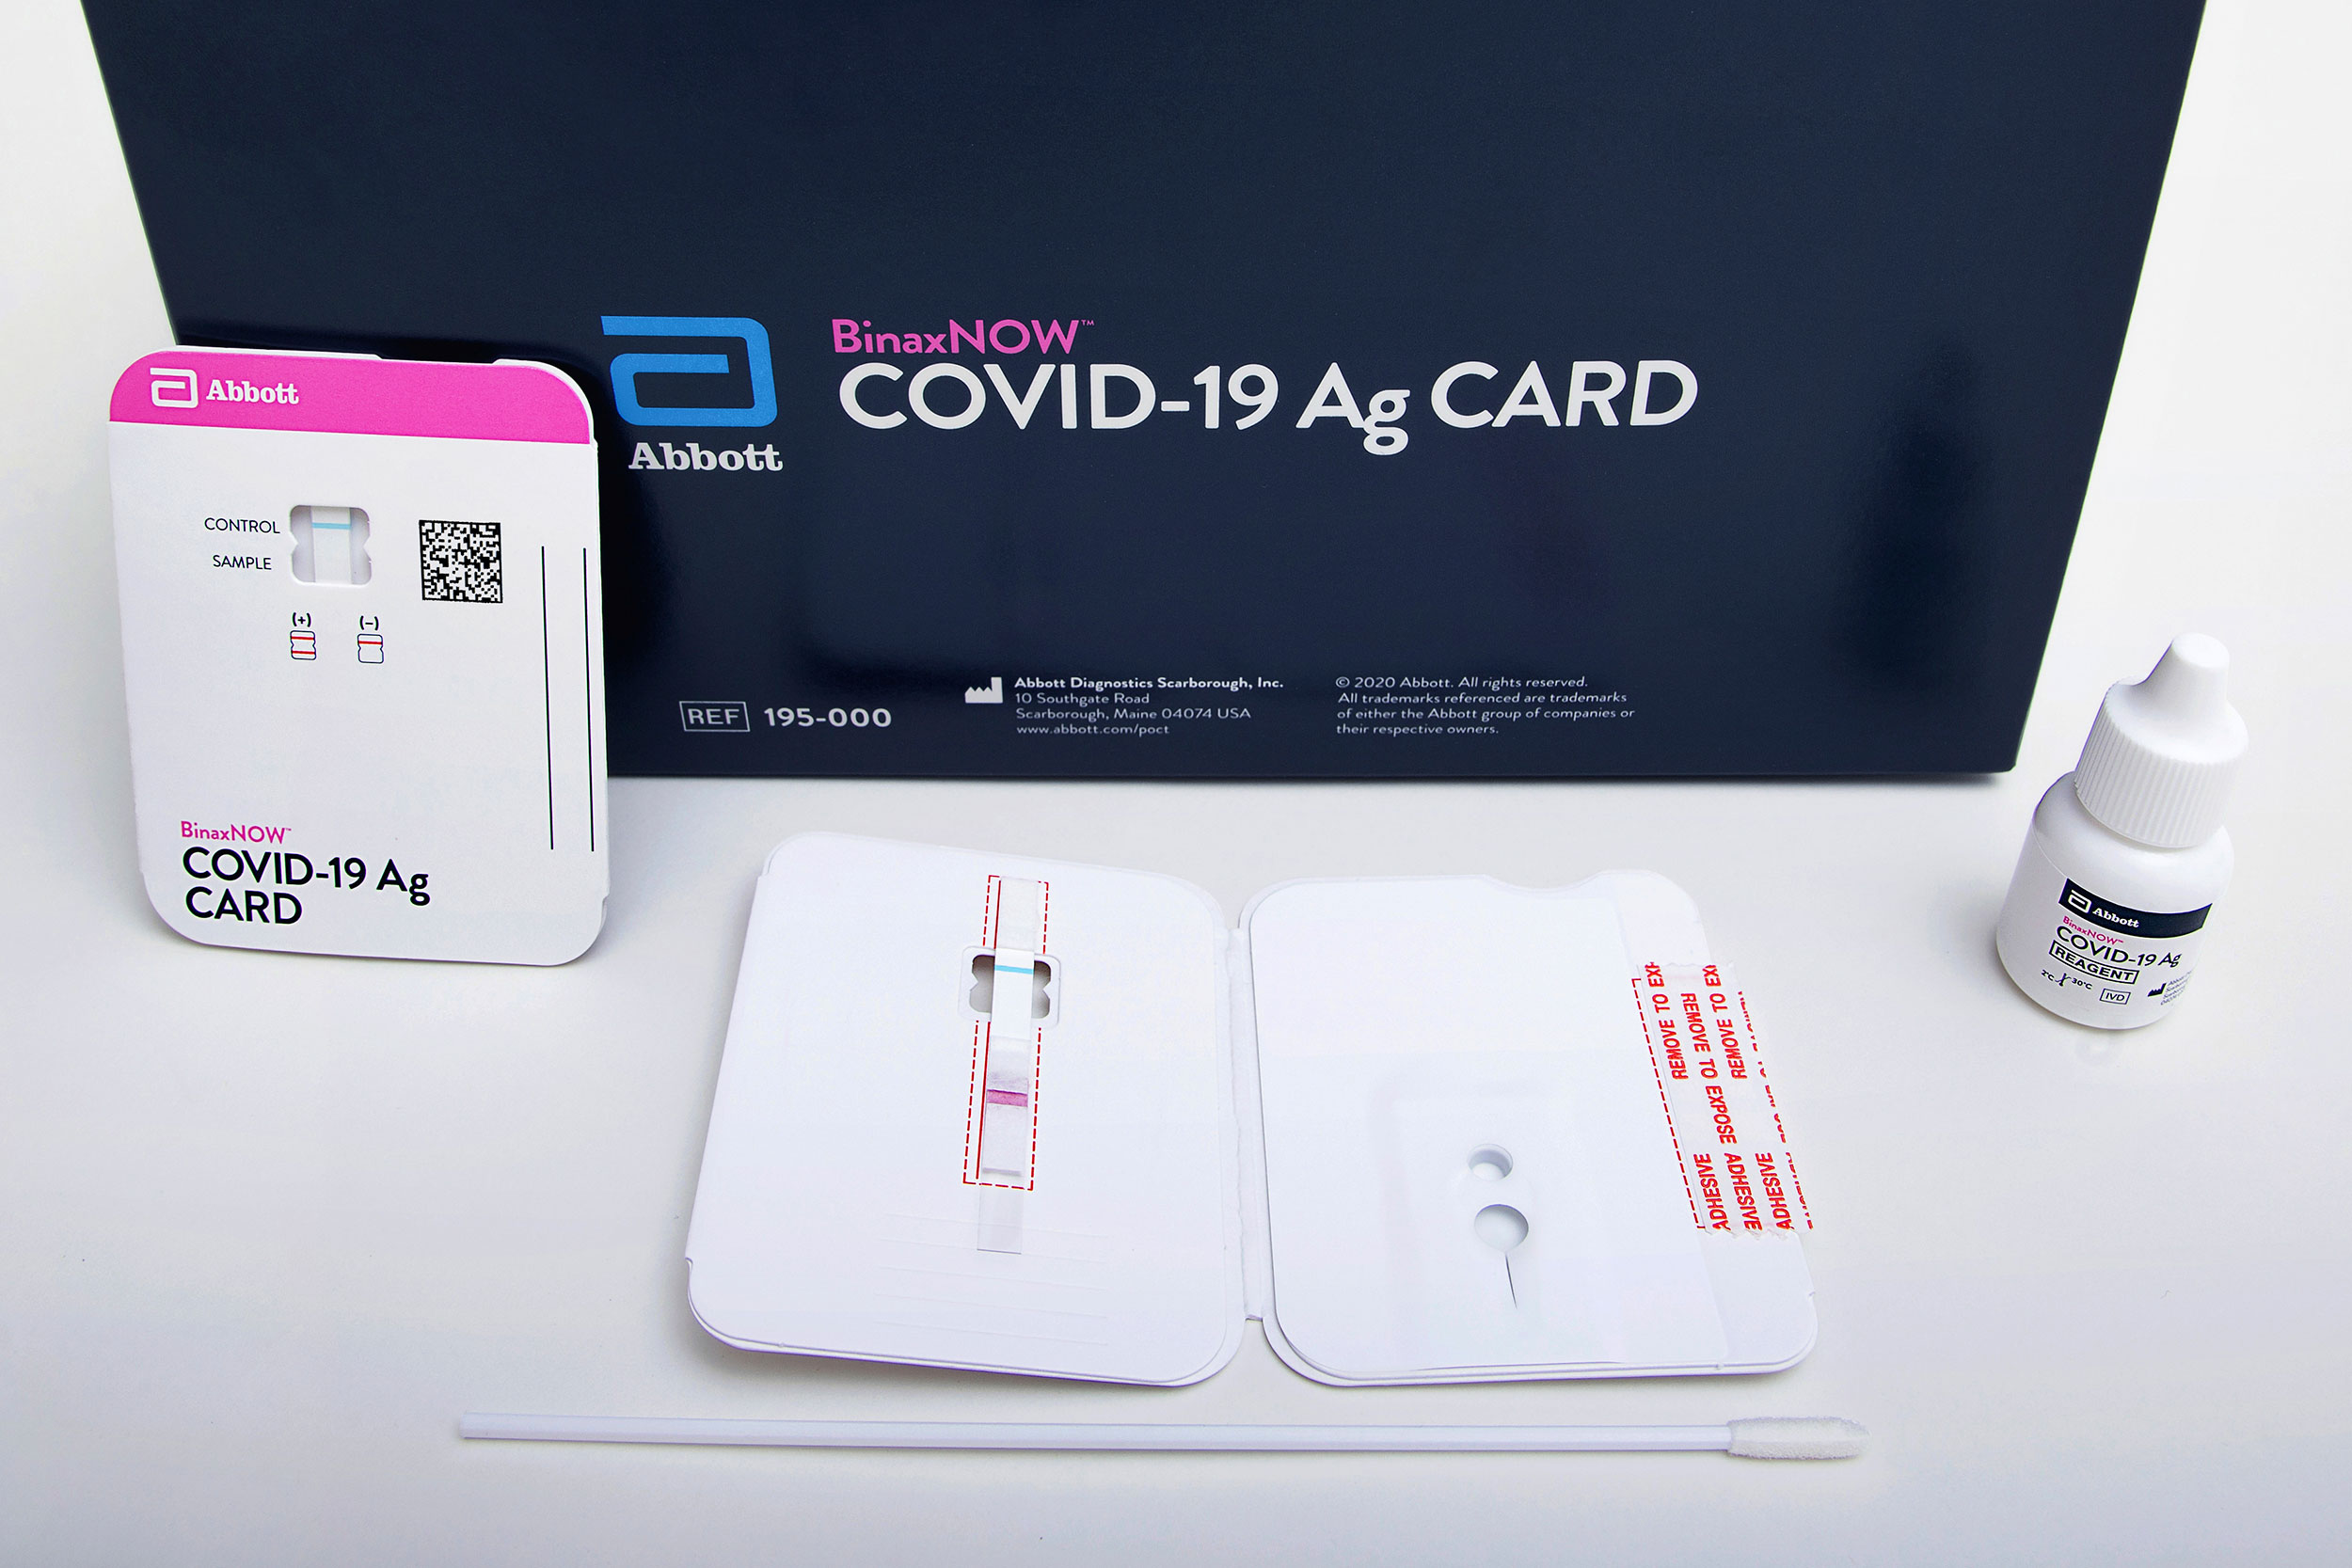 Abbott Laboratories' BinaxNOW rapid Covid-19 test.